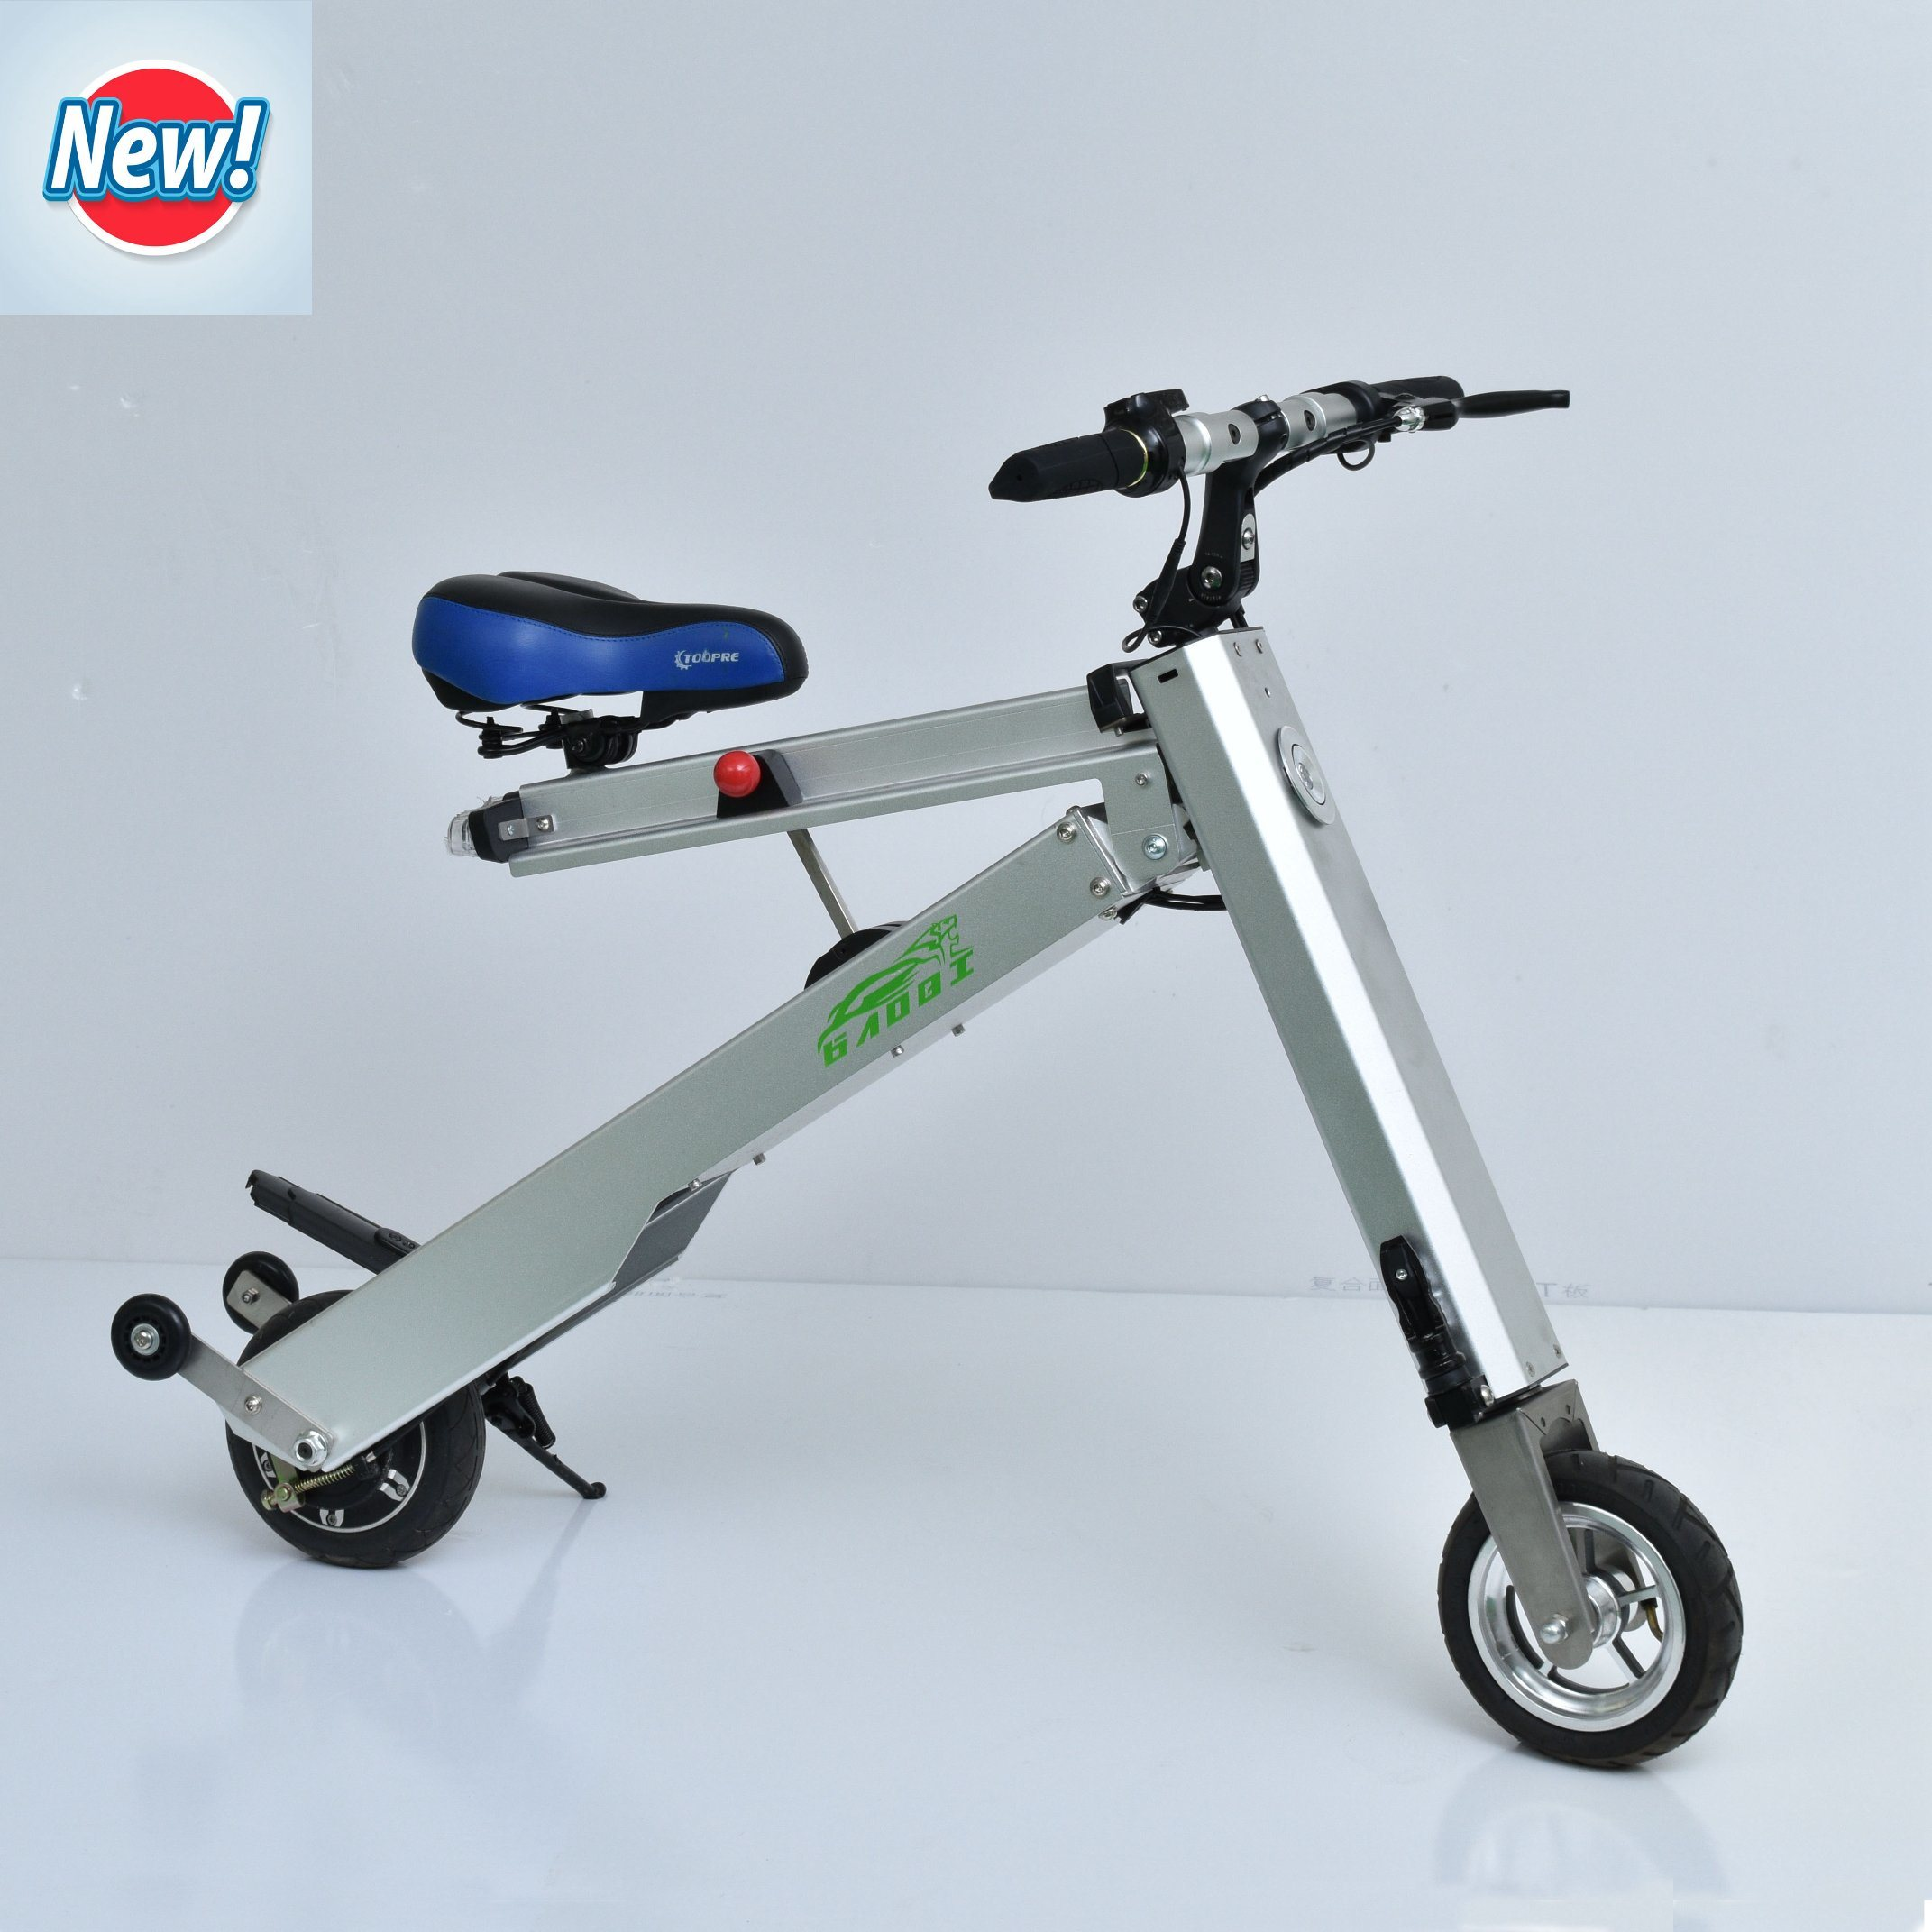 2f677828d14 China Ingenious Folding Design: Easily Folding Cleverly Fixed New Portable  Electric Bicycle Mini Bike Scooter E-Bike Suitable for Many Occasions -  China ...